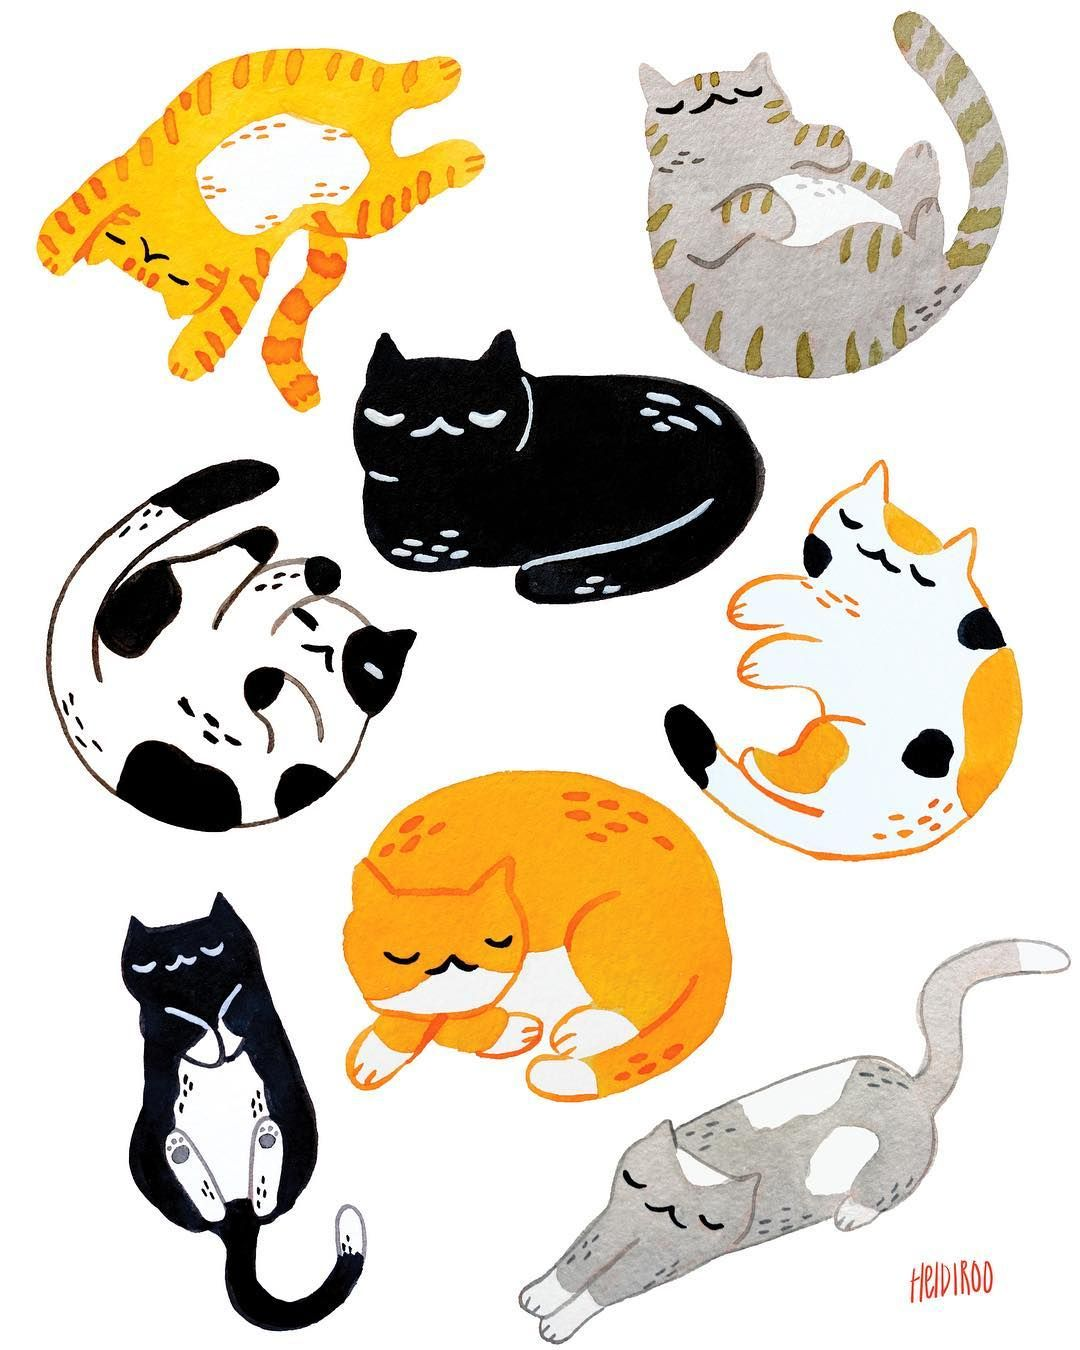 Heidi Moreno On Instagram More Cats Because Cats And Cats You Know This Print Is Coming With Me To Brea Pet Expo Breaspecialevents Cat Art Cat Drawing Cute Art